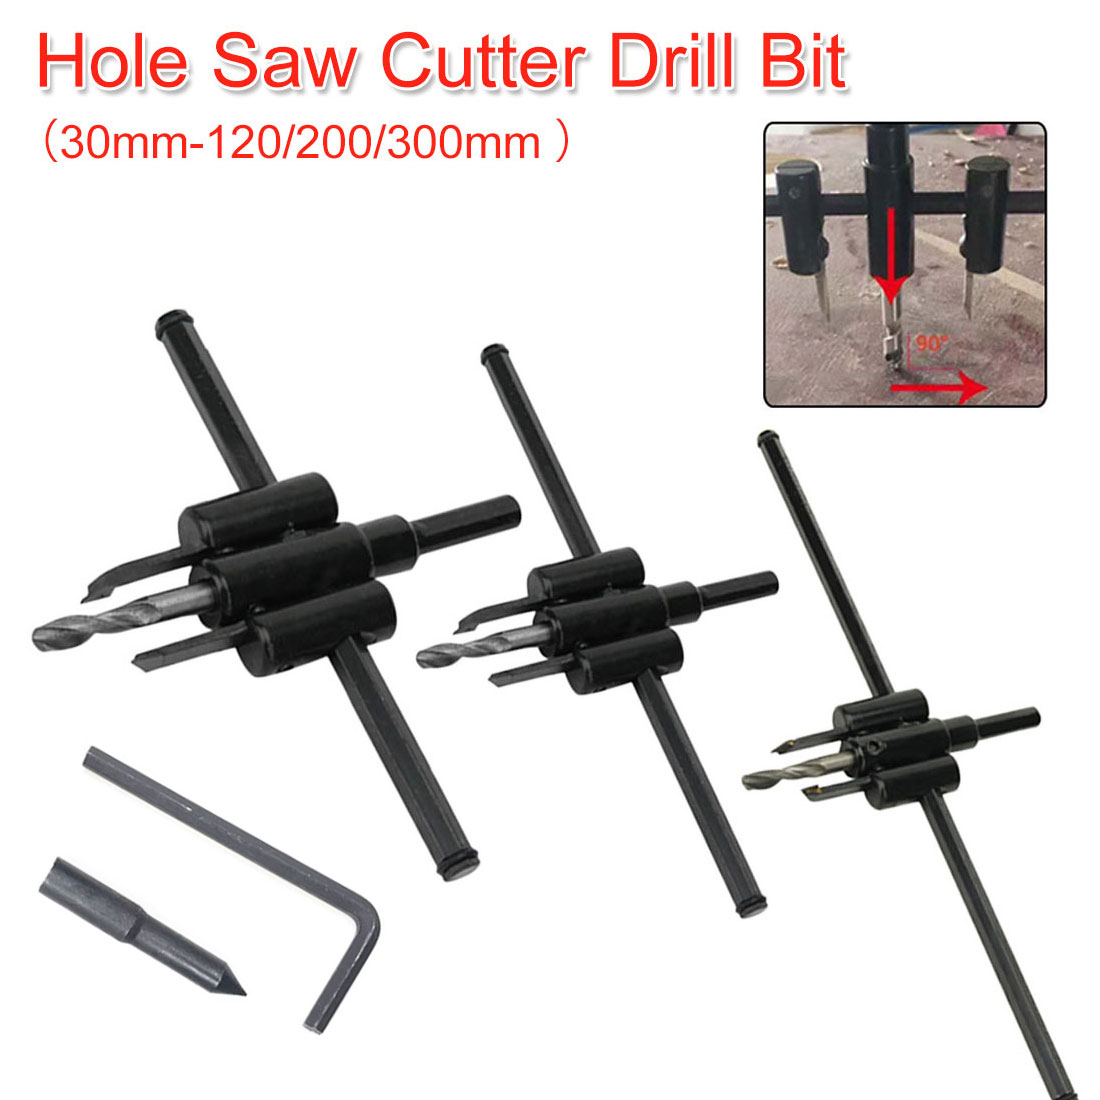 Woodworking Tools Circle Hole Saw Adjustable Drill Bit 30mm-120/200/300mm Aircraft Type Wood Circle Hole Saw Cutter Cordless